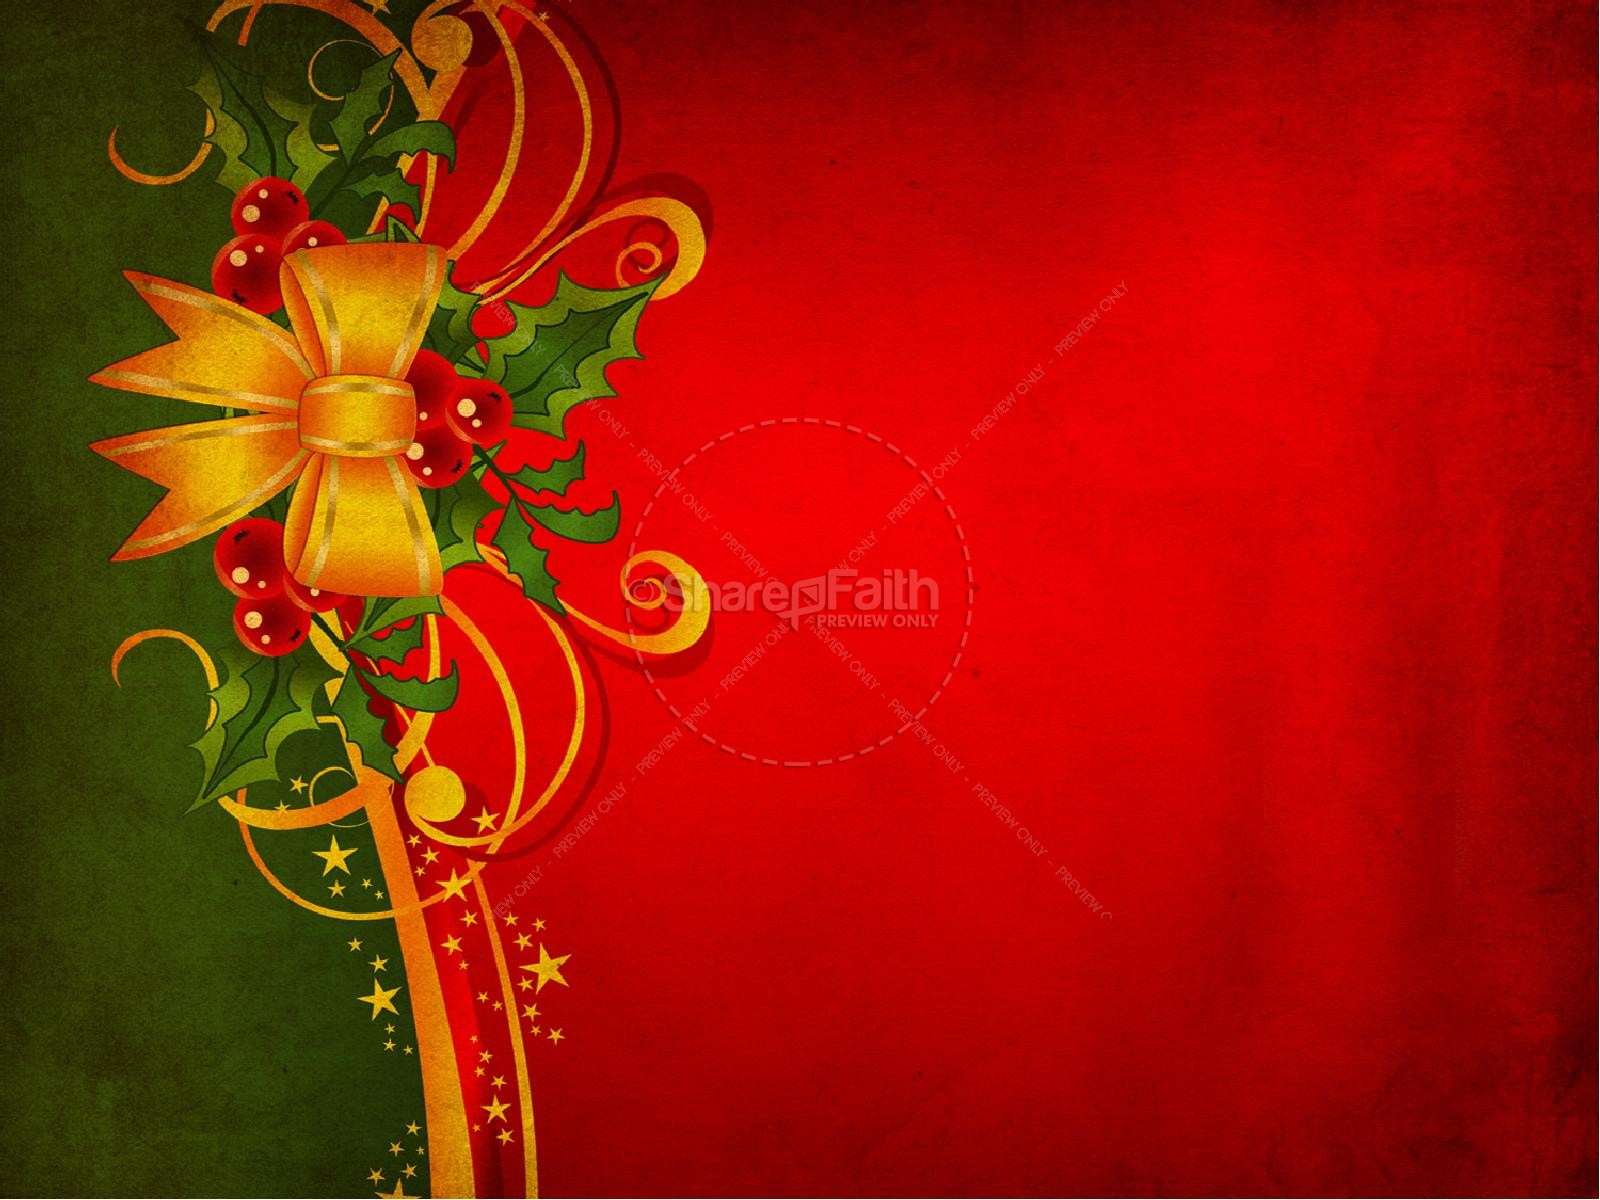 the message of christmas powerpoint | christmas powerpoints, Powerpoint templates